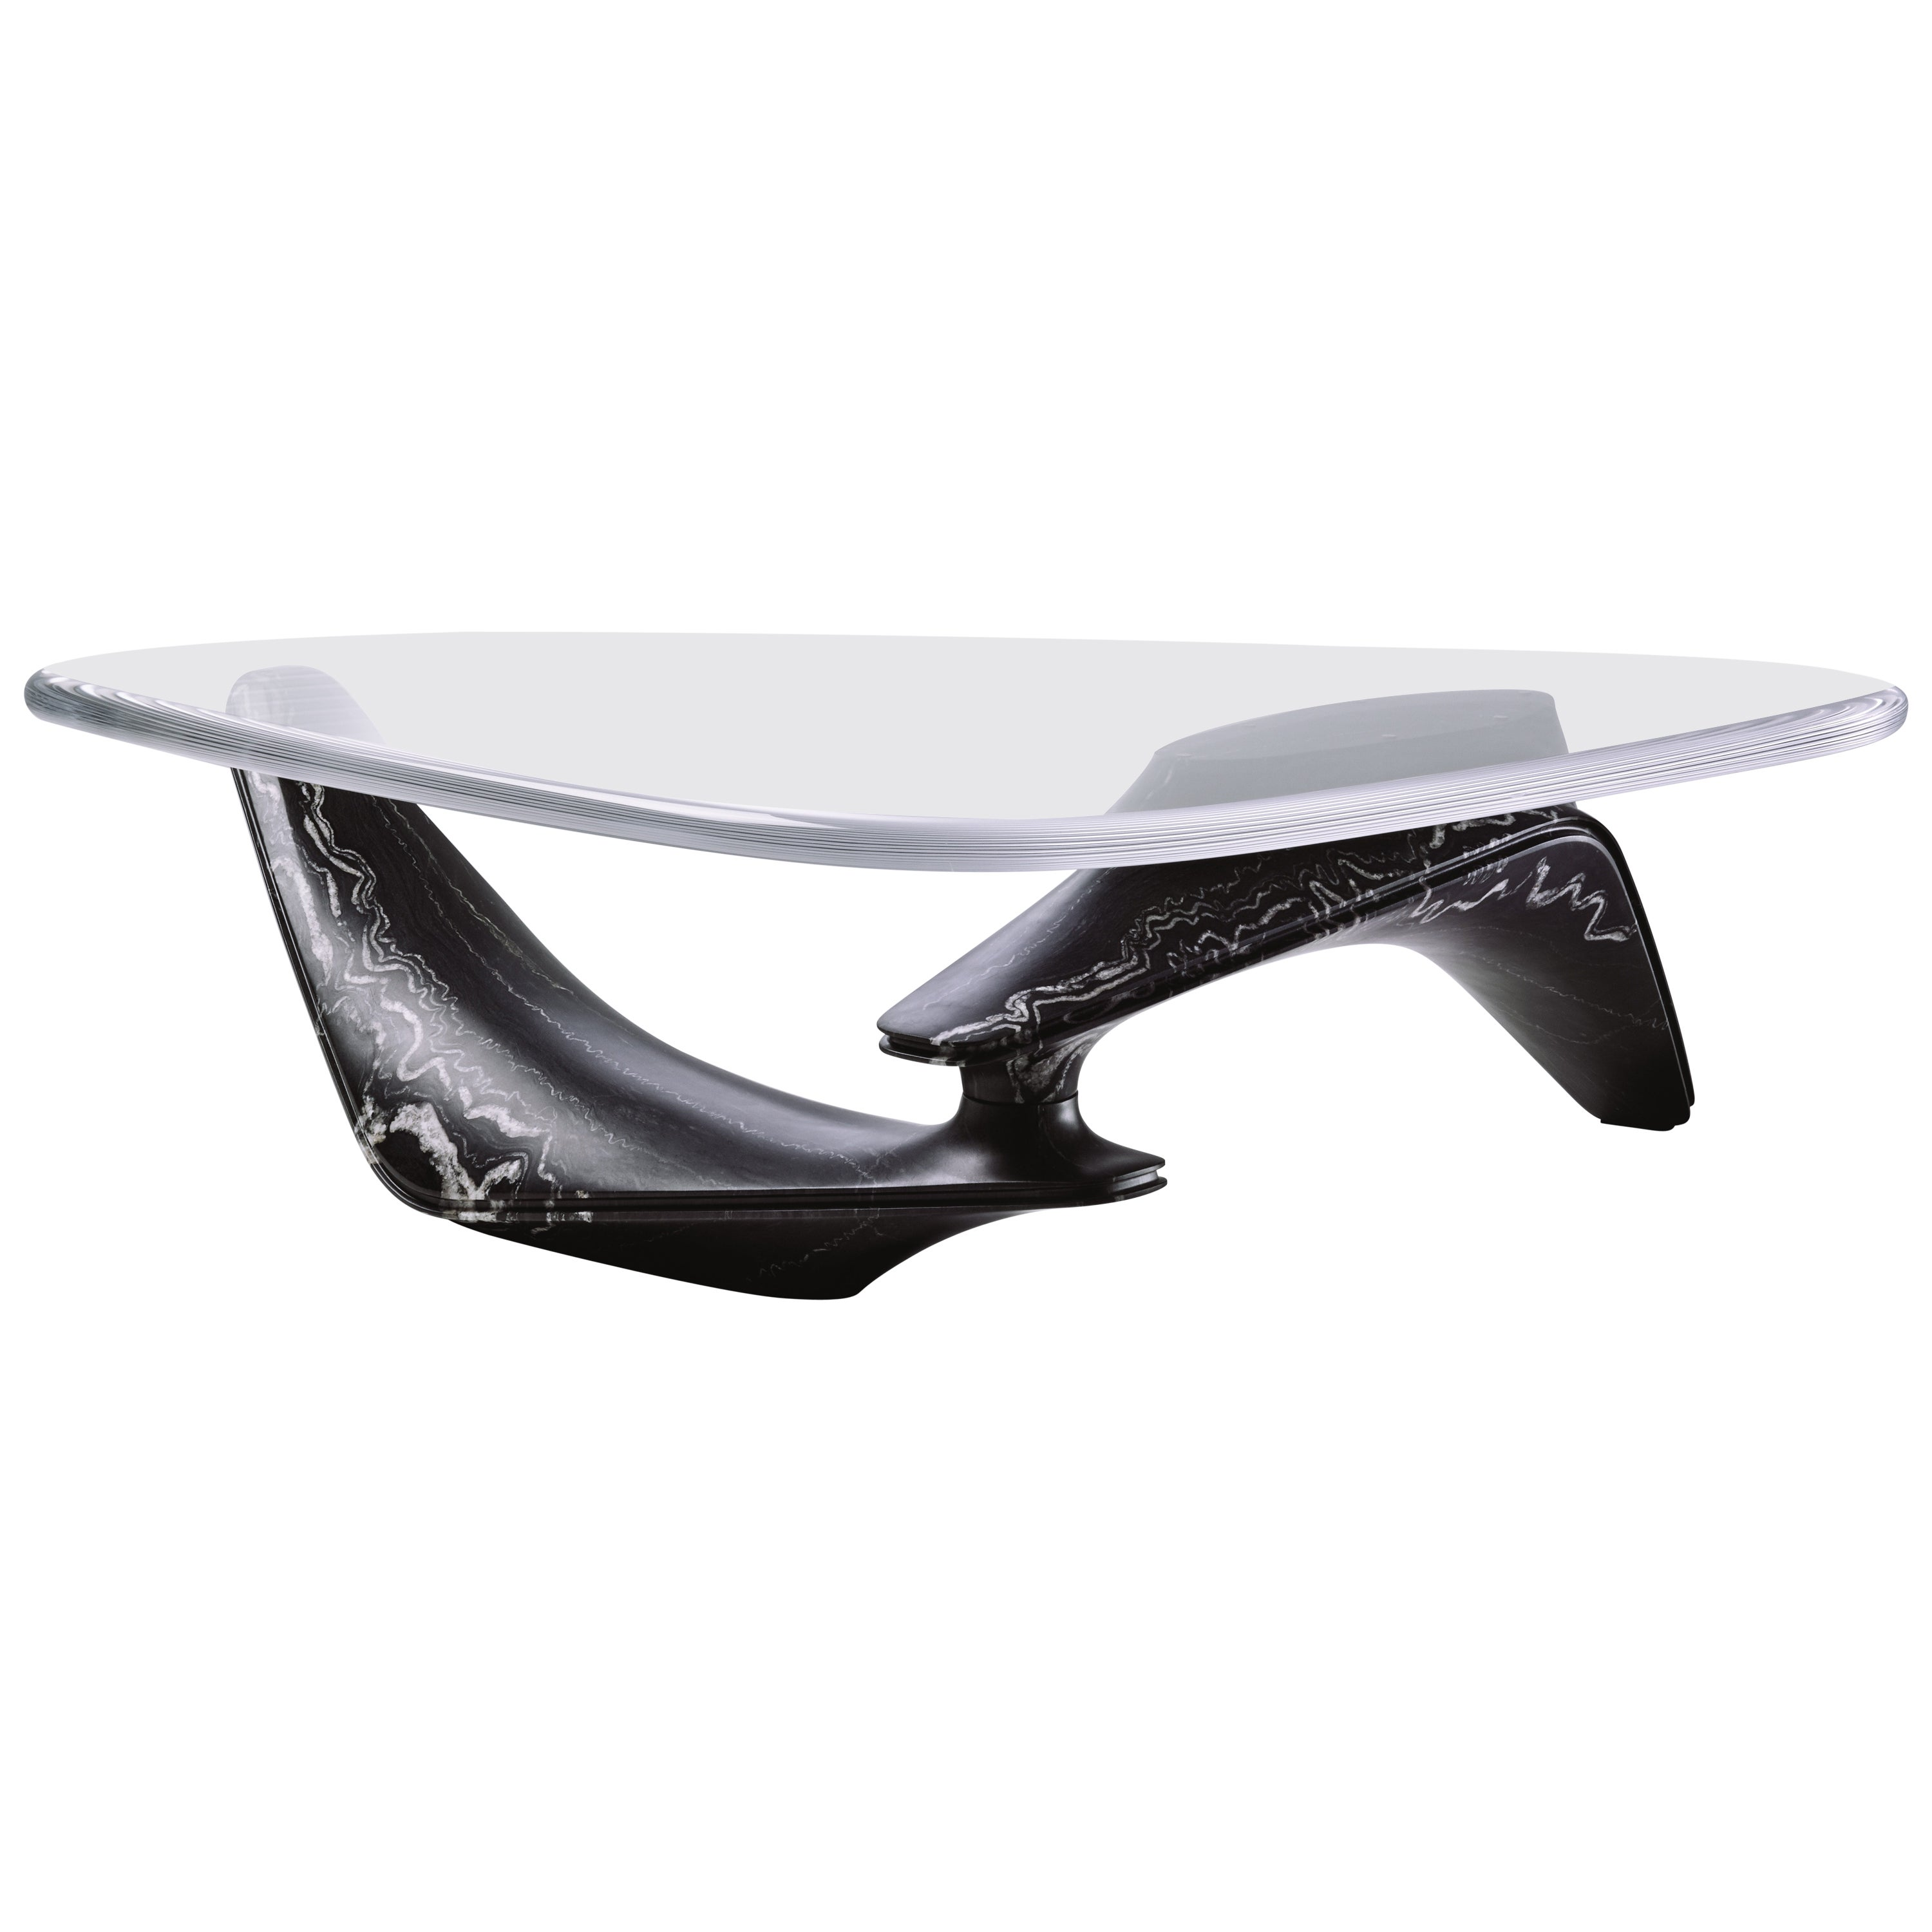 Marble Coffee Table in Marquina Nero Marble by Designer Ora Ito